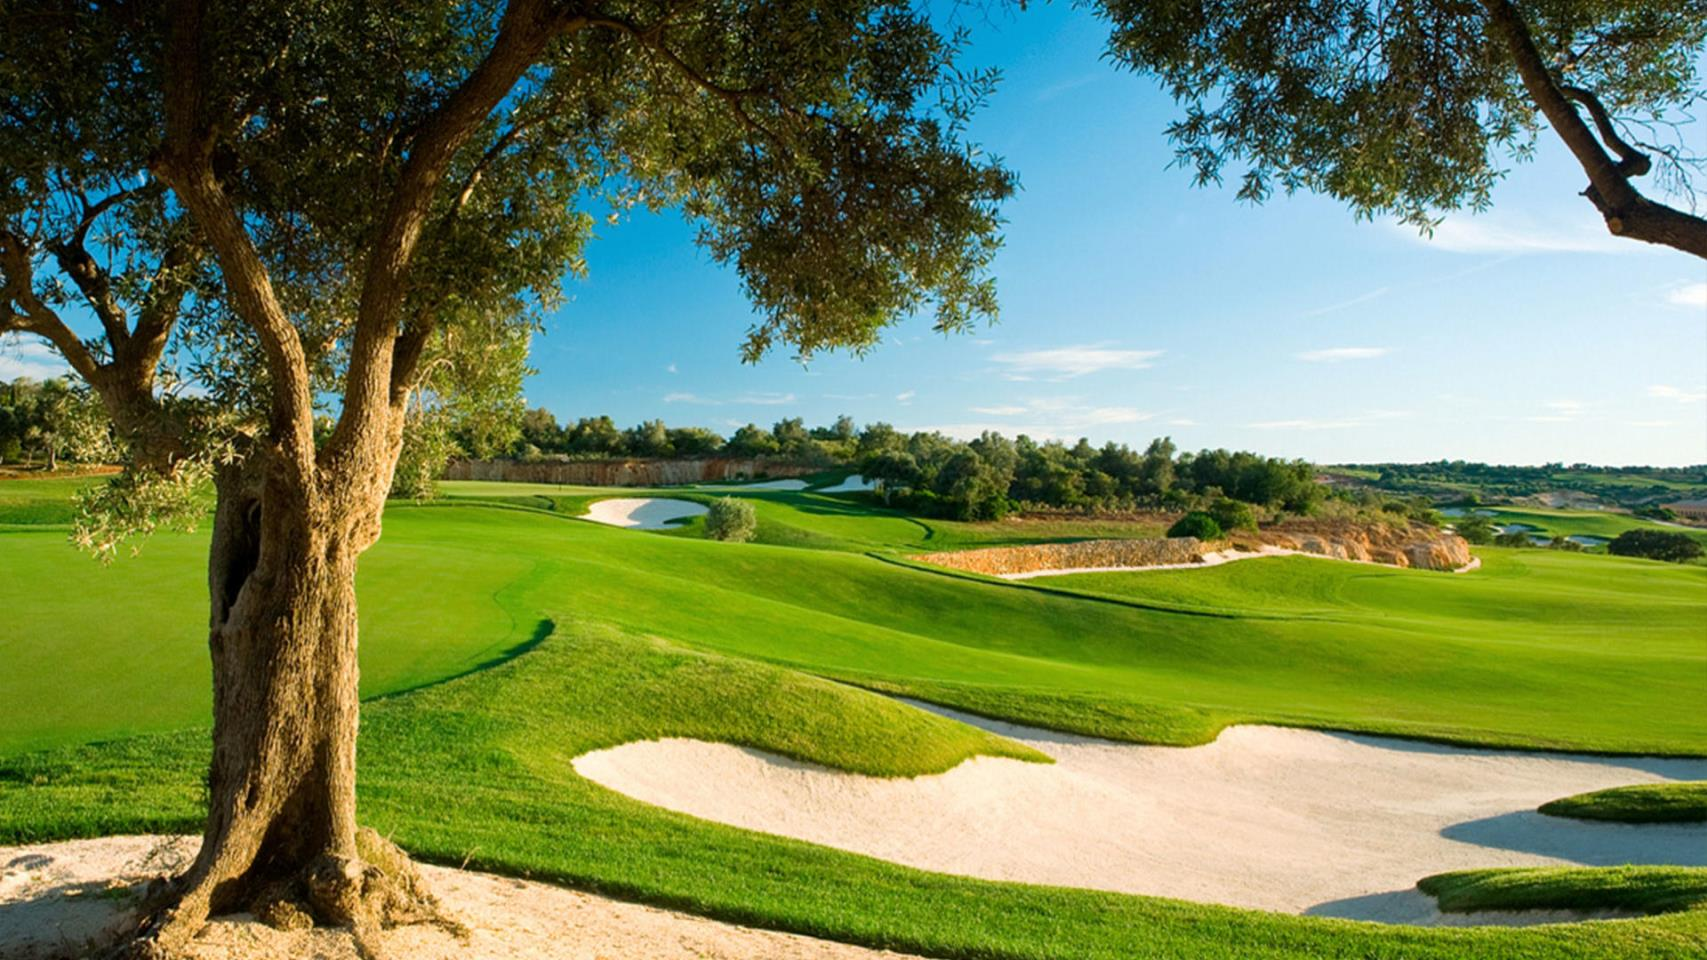 Amendoeira Golf Resort 4* - 3 Nights Bed & Breakfast, Unlimited Golf